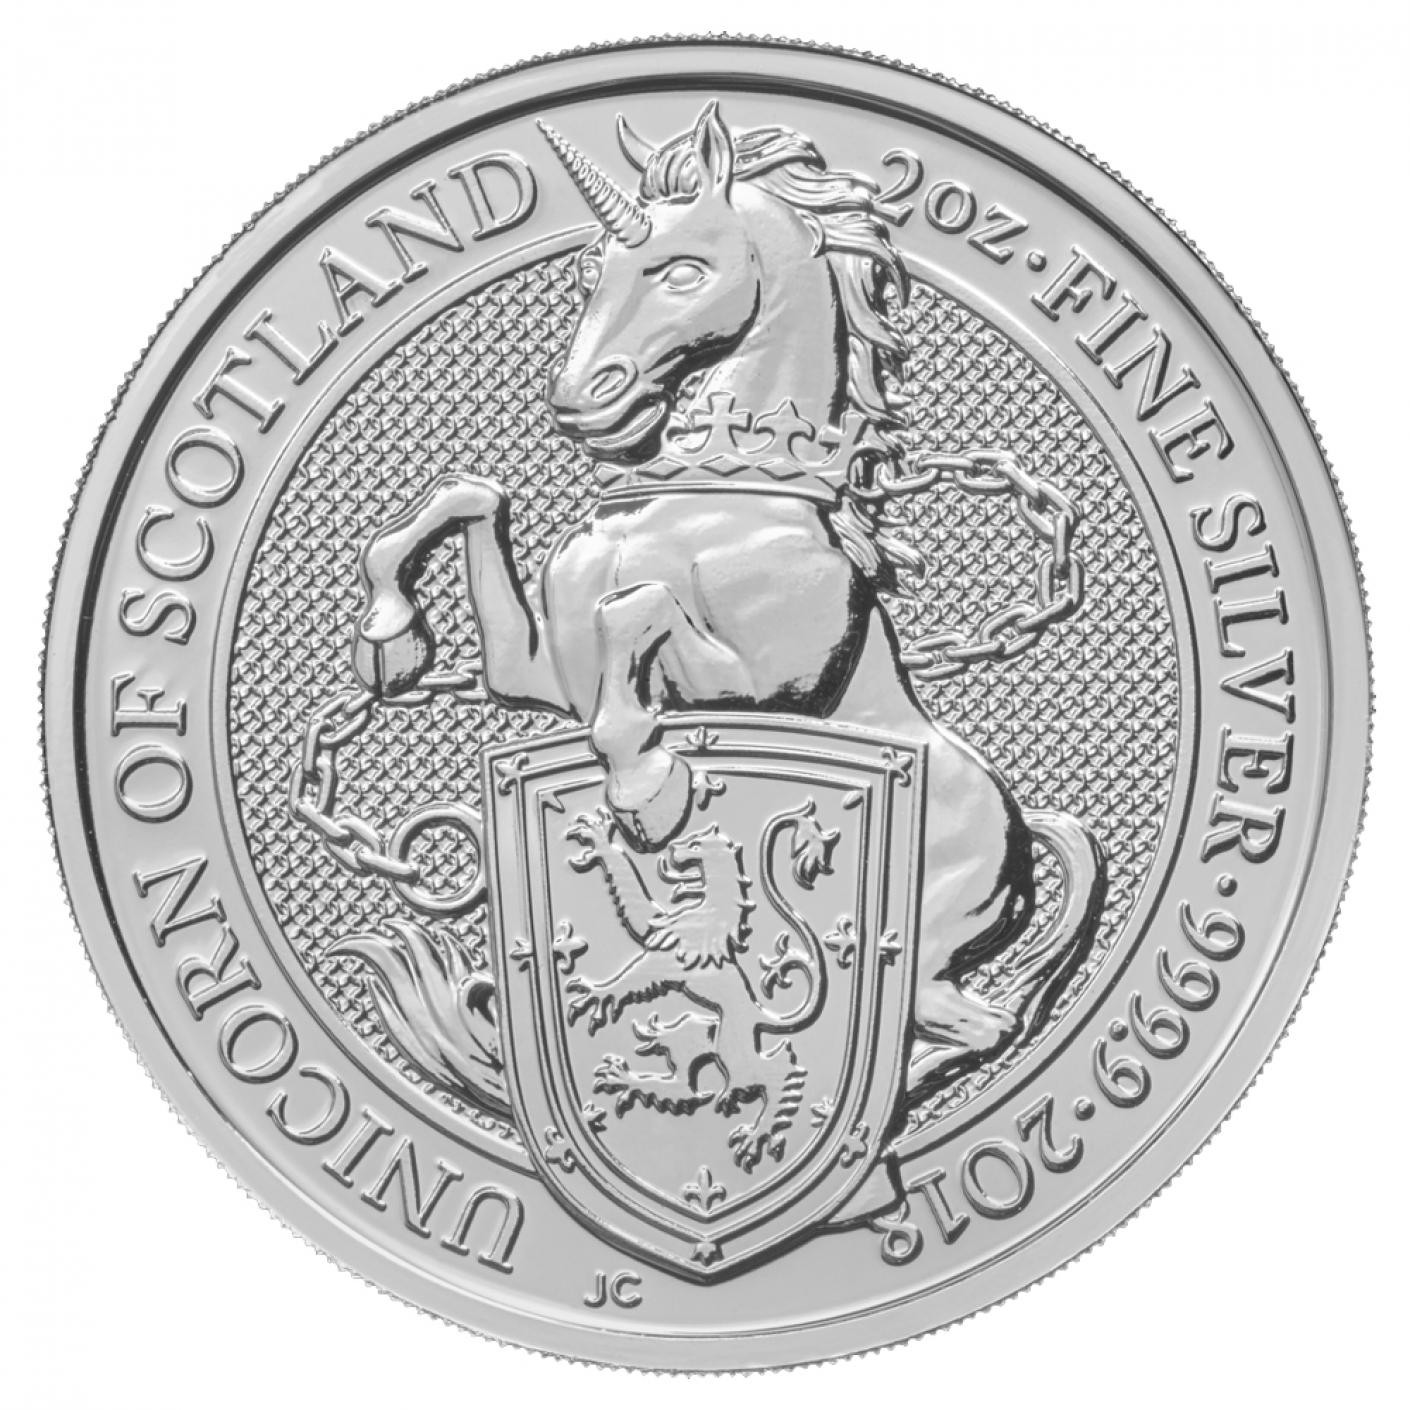 2 oz GB Queen's Beasts – The Unicorn (Coin 4 of 10) – Sold Out